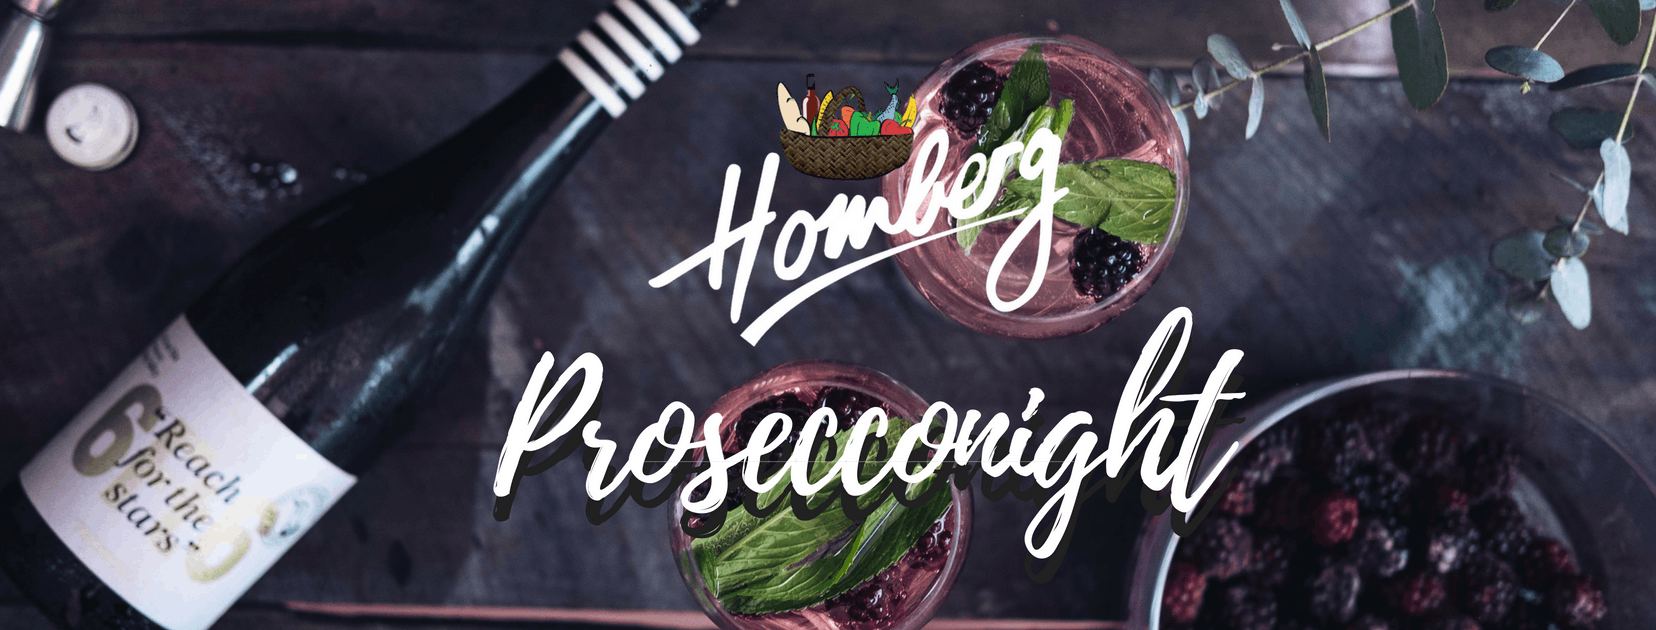 PROSECCONIGHT by REWE Homberg